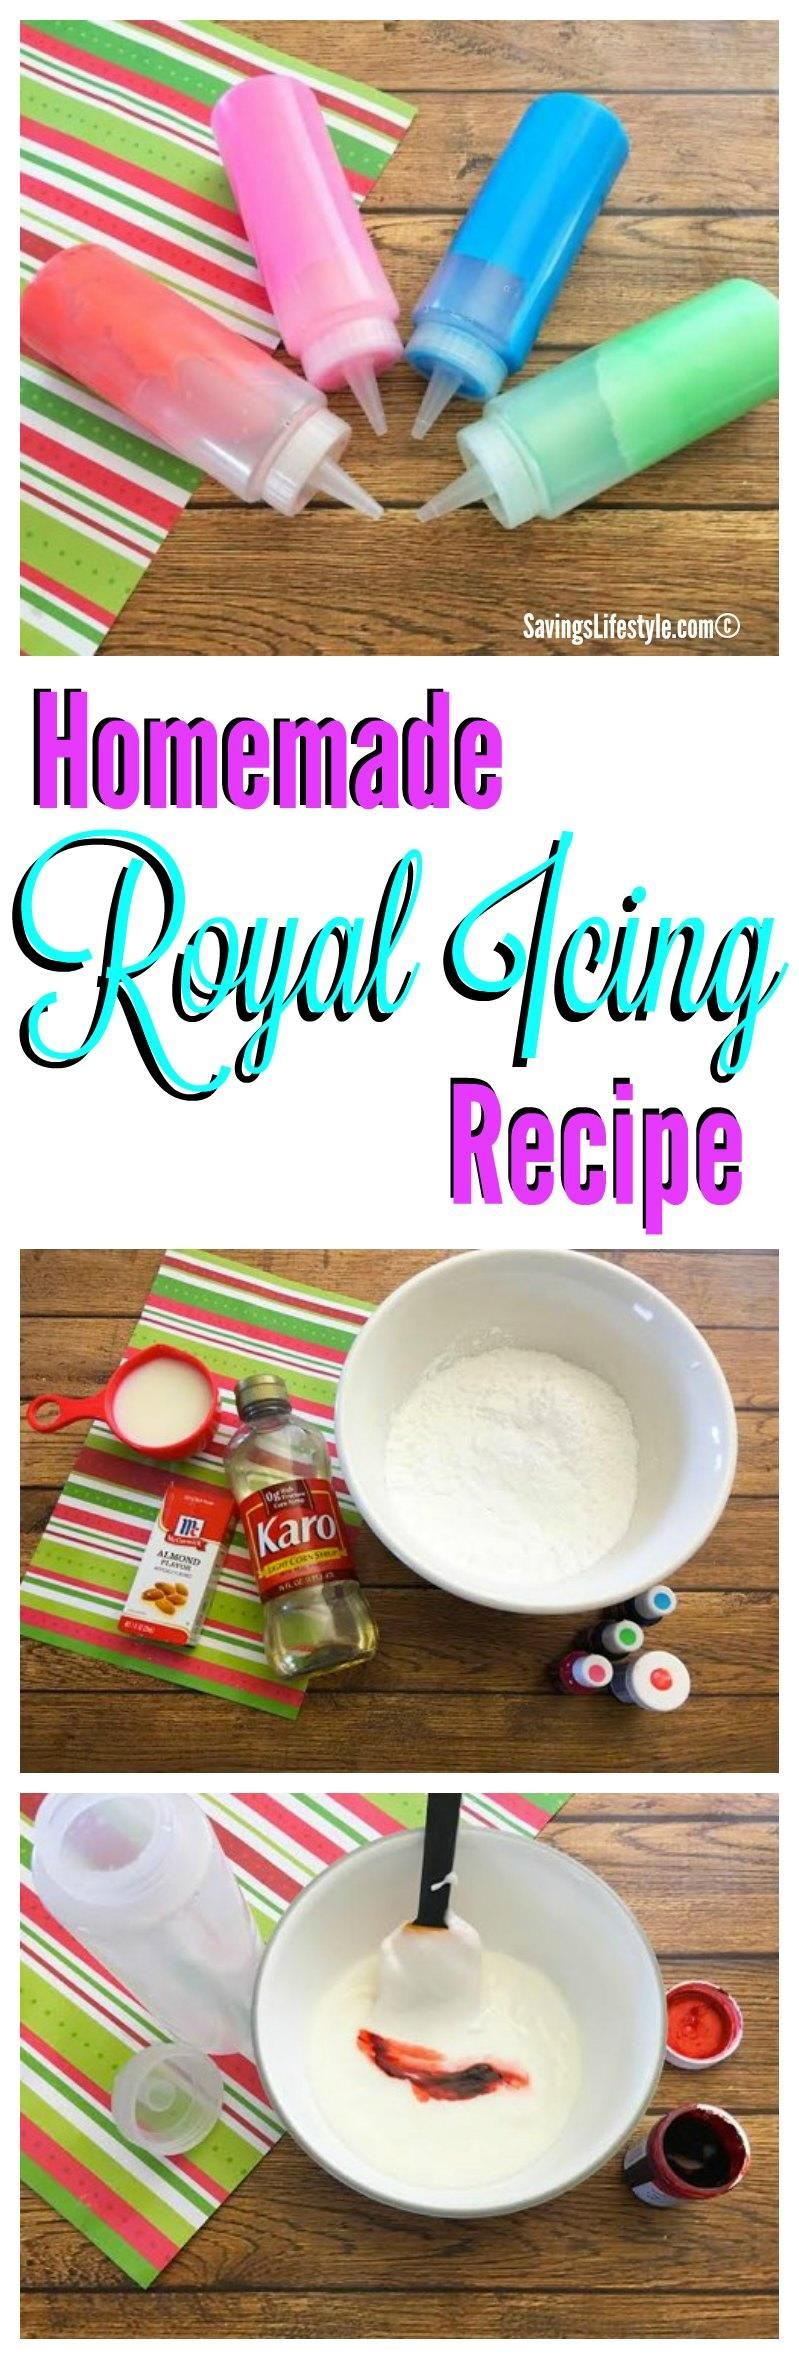 Easy Homemade Royal Icing Recipe Yum Decorating